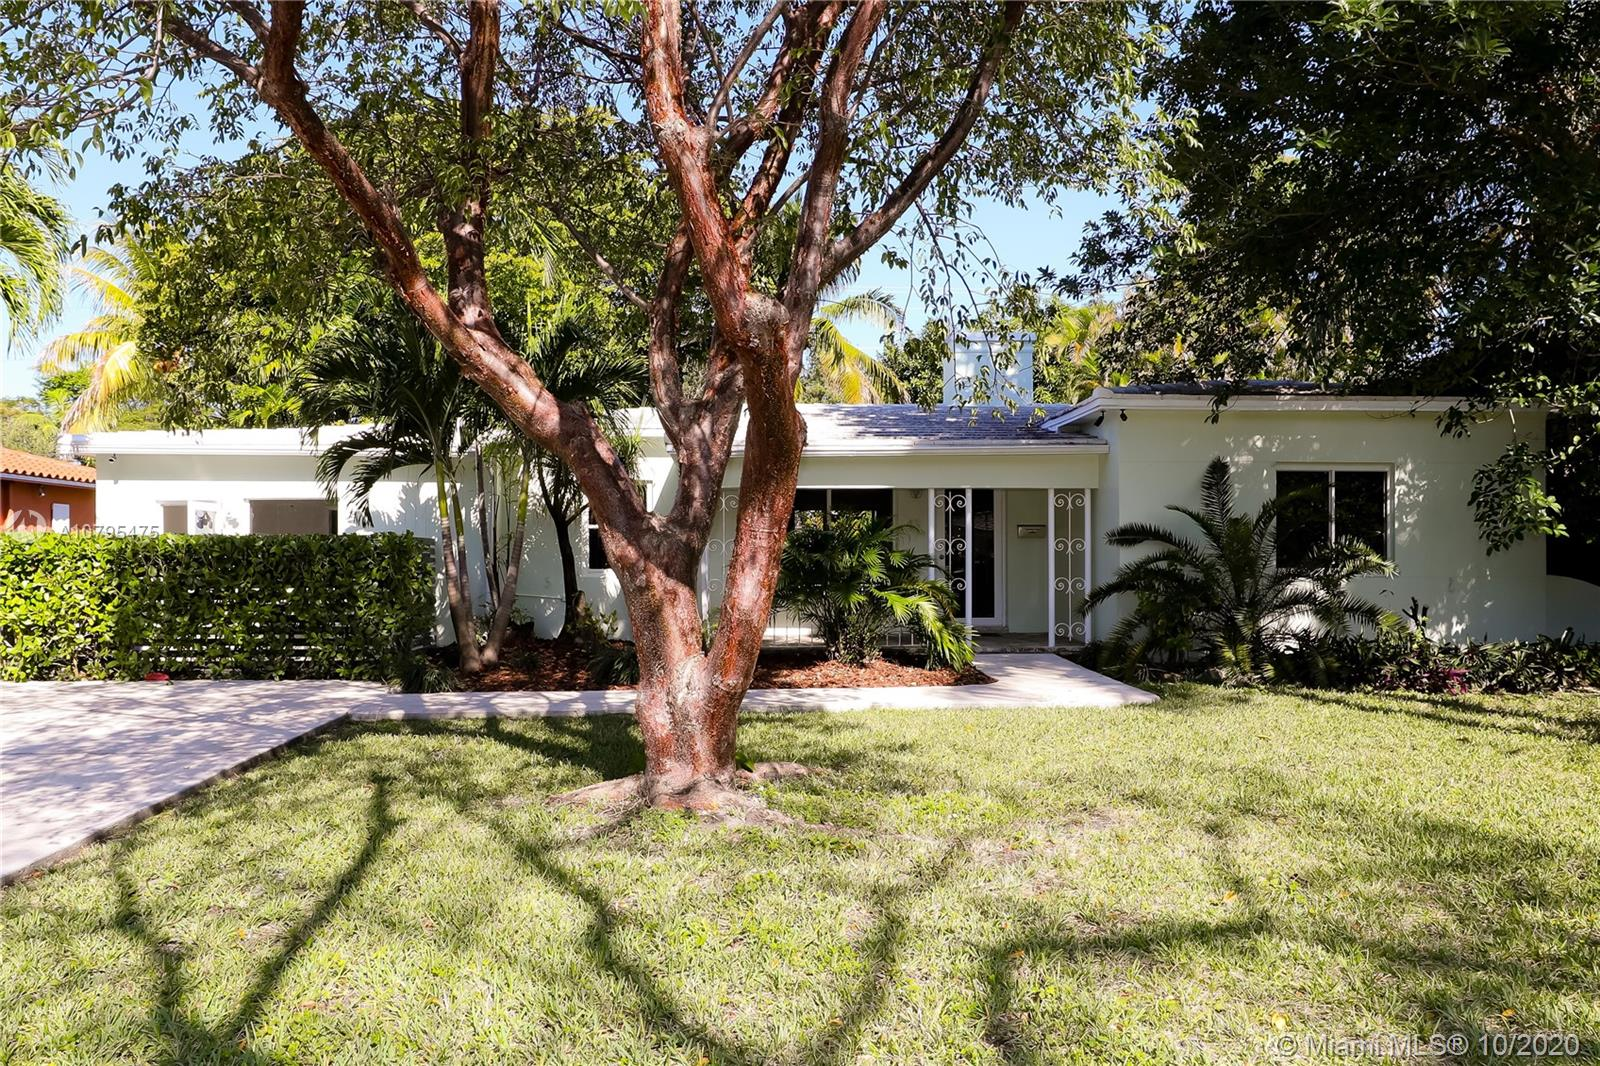 431 52 St, Miami, Florida 33137